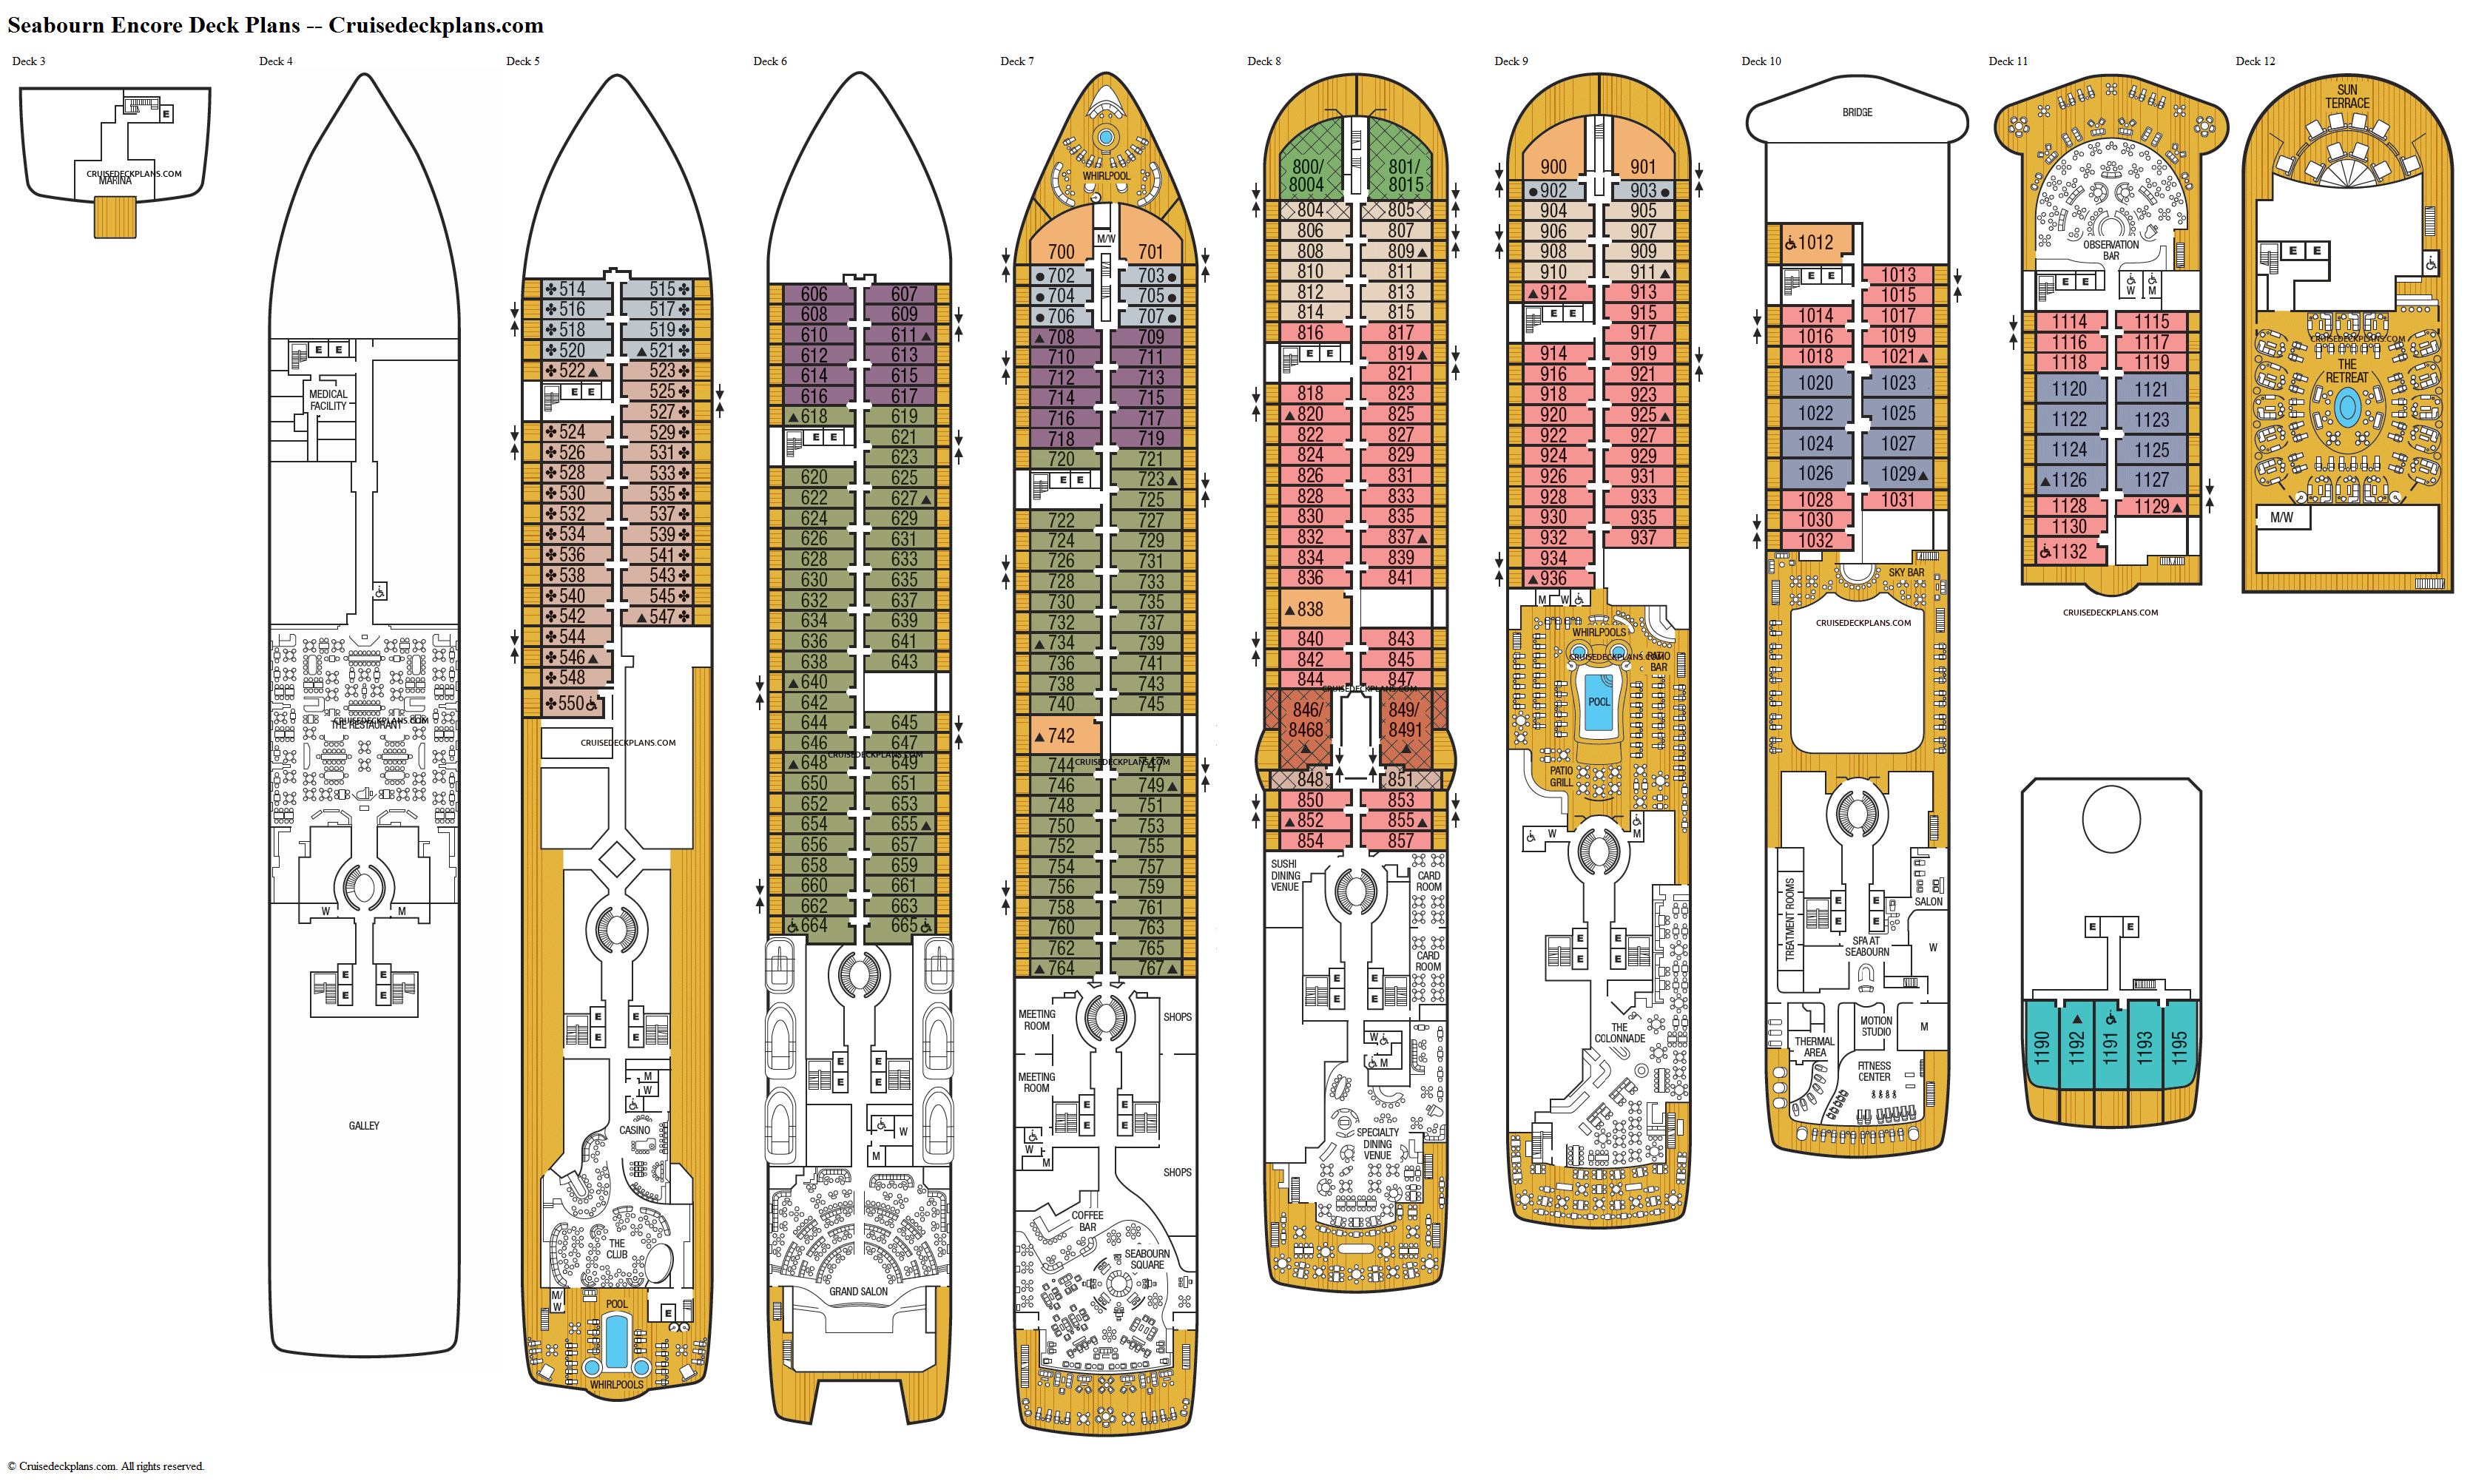 Seabourn Encore deck plans image